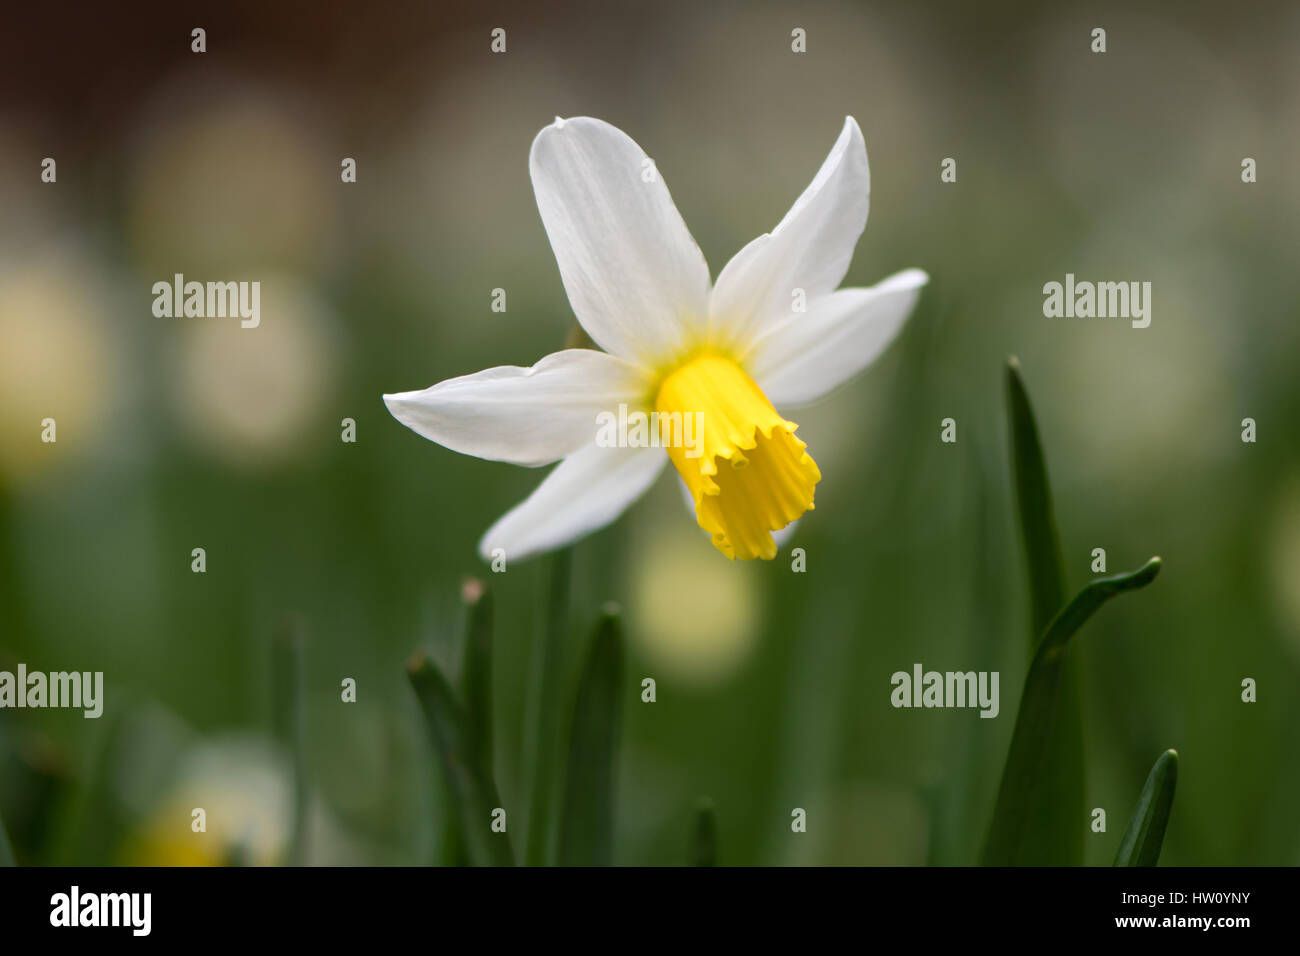 Daffodil Narcissus February Gold flower. Yellow and white flower of spring perennial plant in the Amaryllidaceae - Stock Image